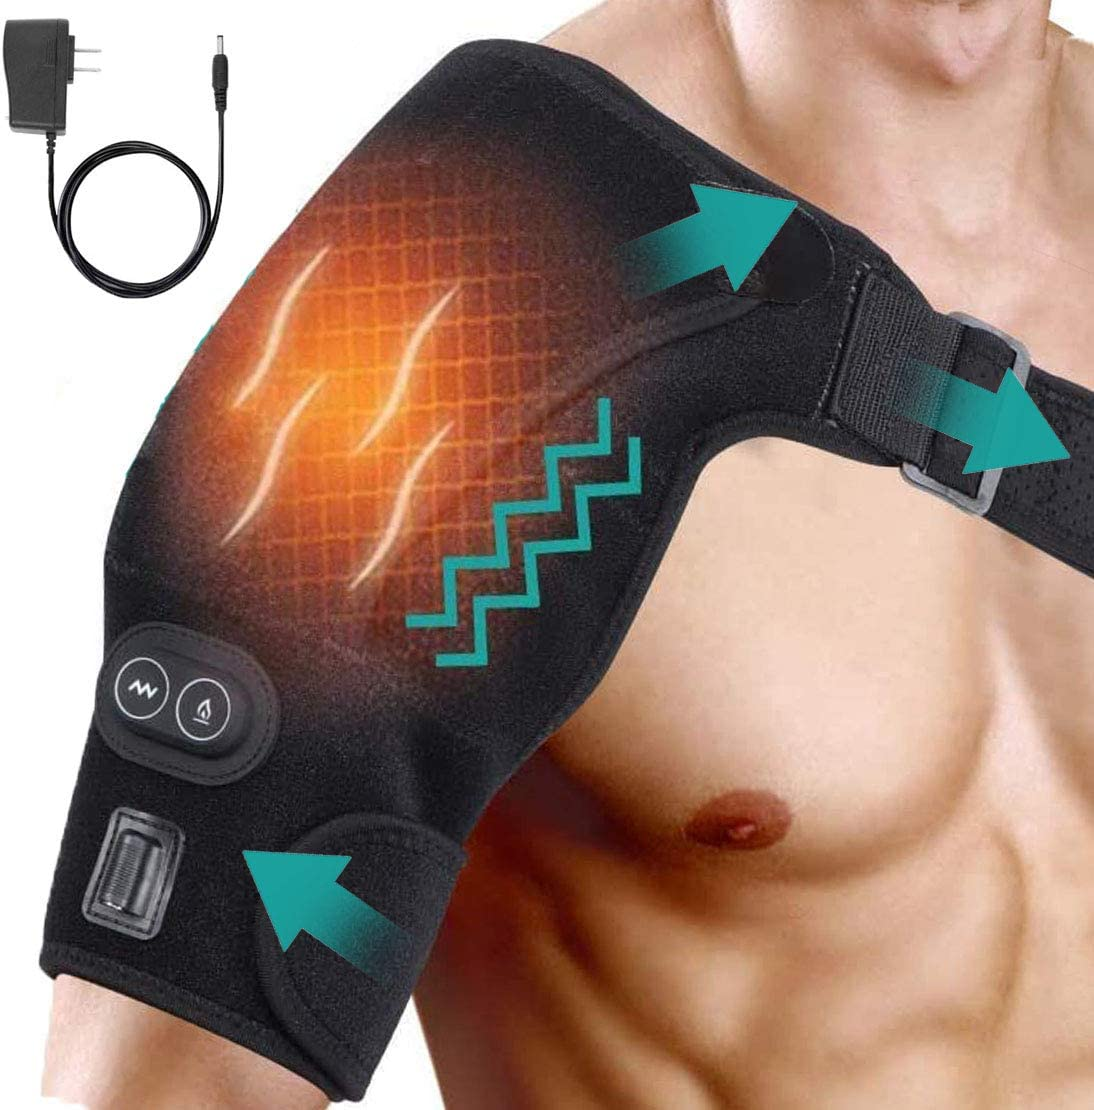 ORANDSIGNE Shoulder Wrap Brace Heating Pad Portable Adjustable Electric 3 Heat Settings Support Hot Therapy Pain Relief